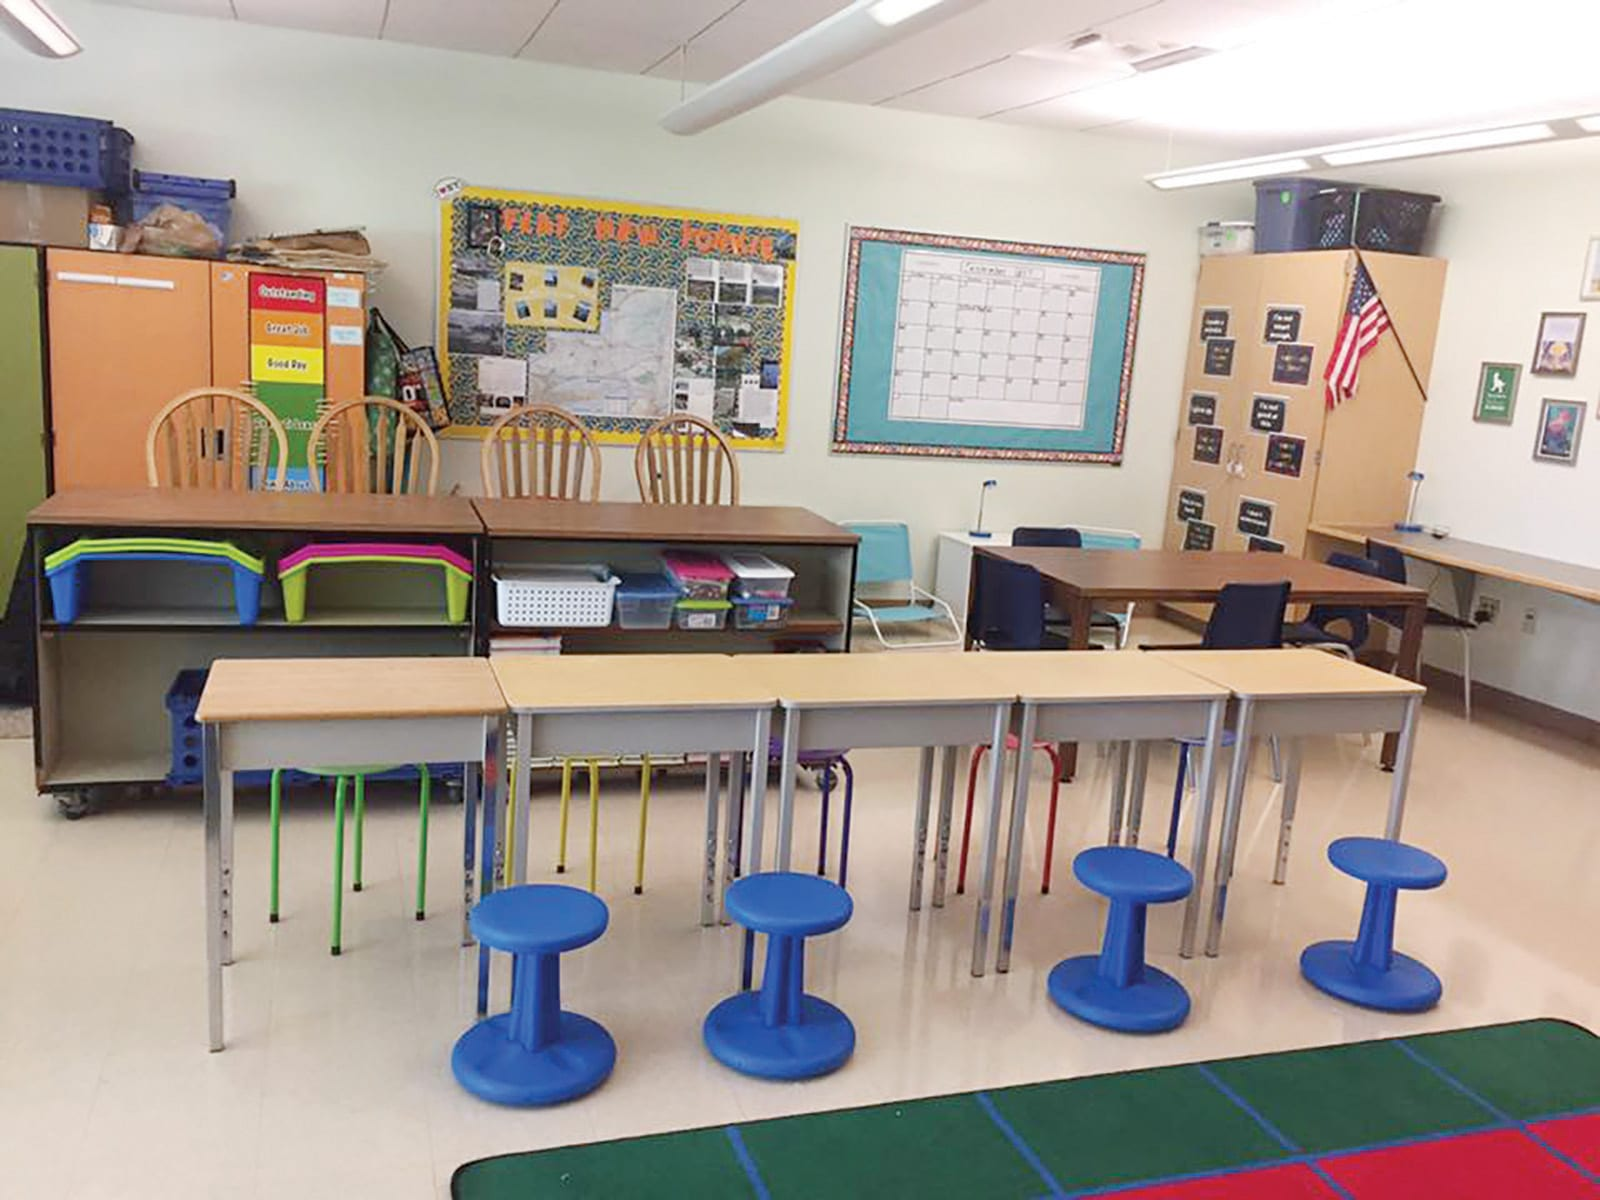 Getting a good seat: Flexible seating offers students options beyond the desk